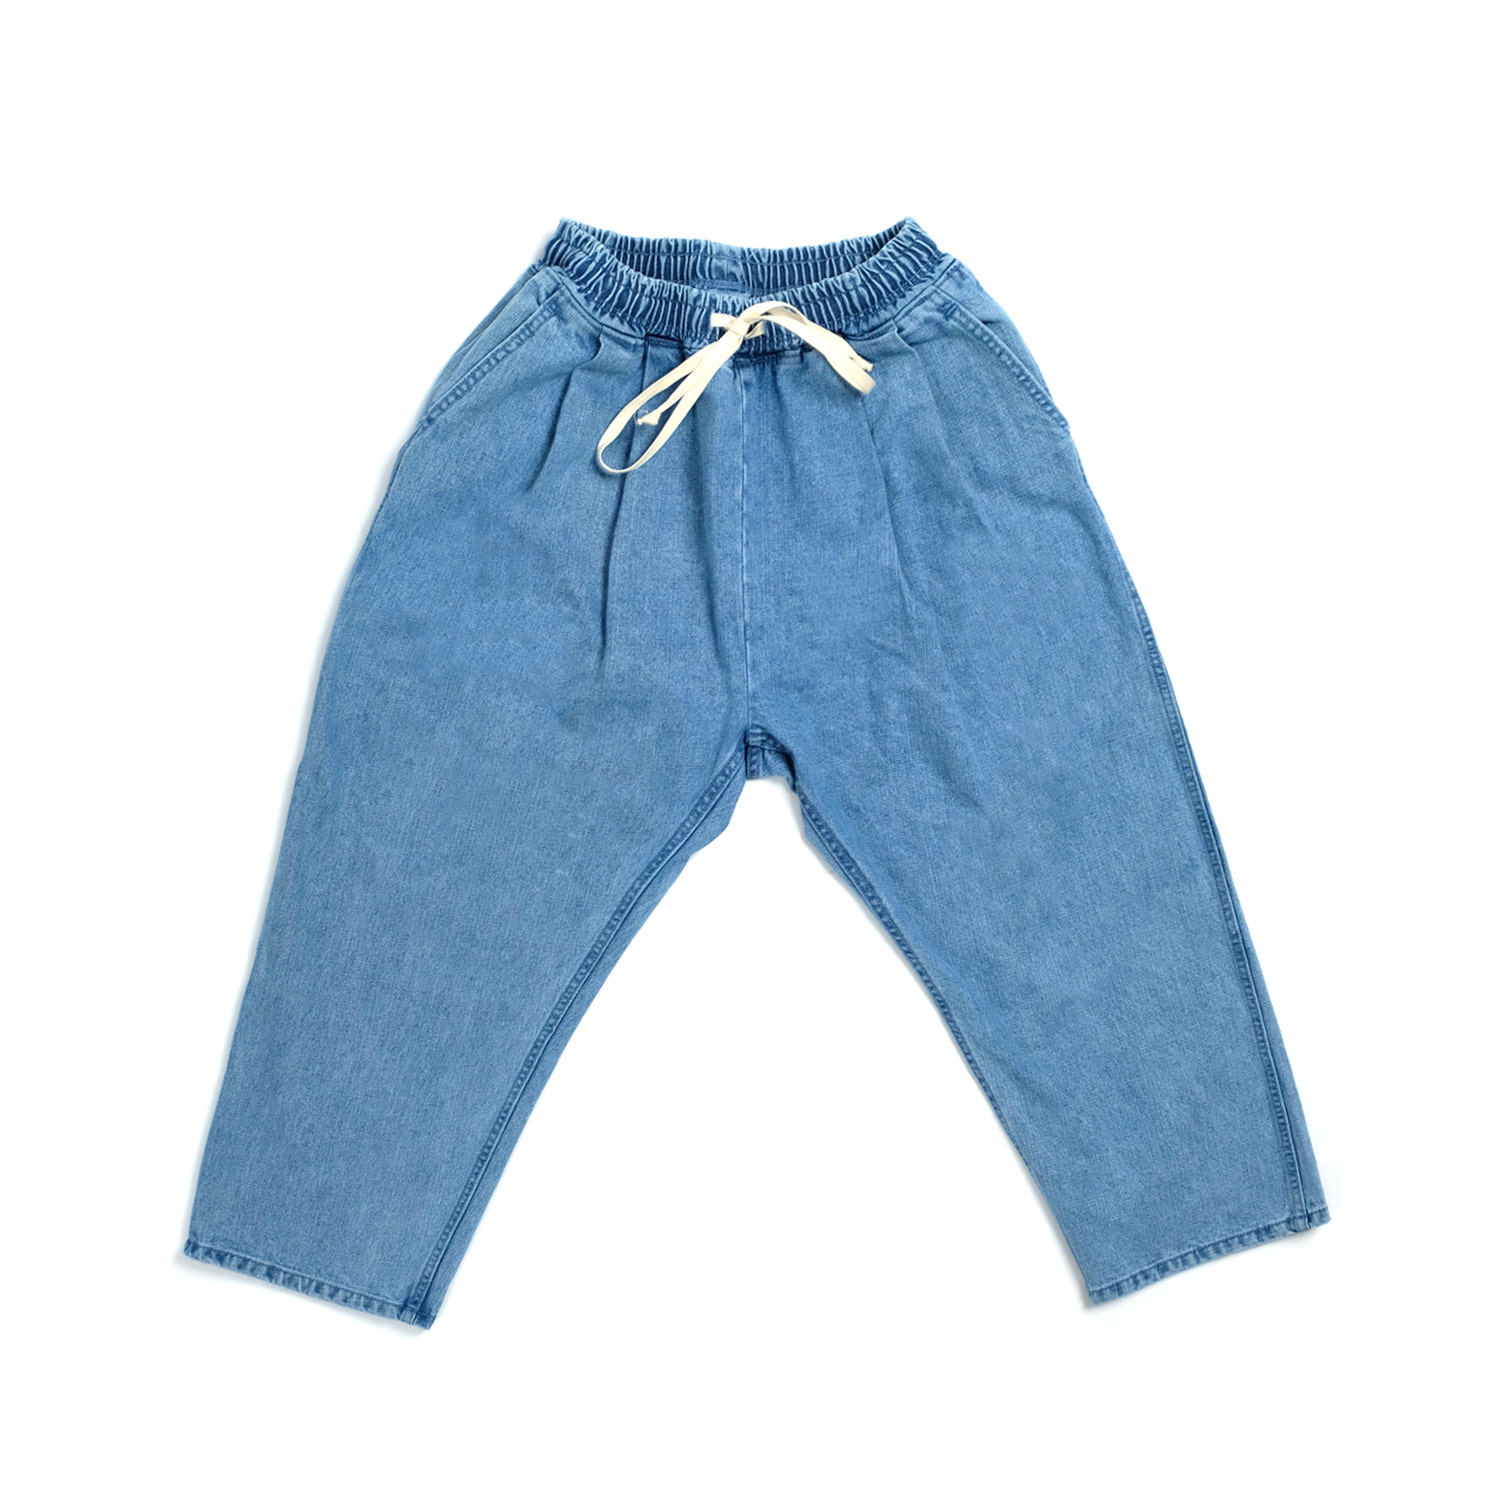 Easy Pants - Washed Blue